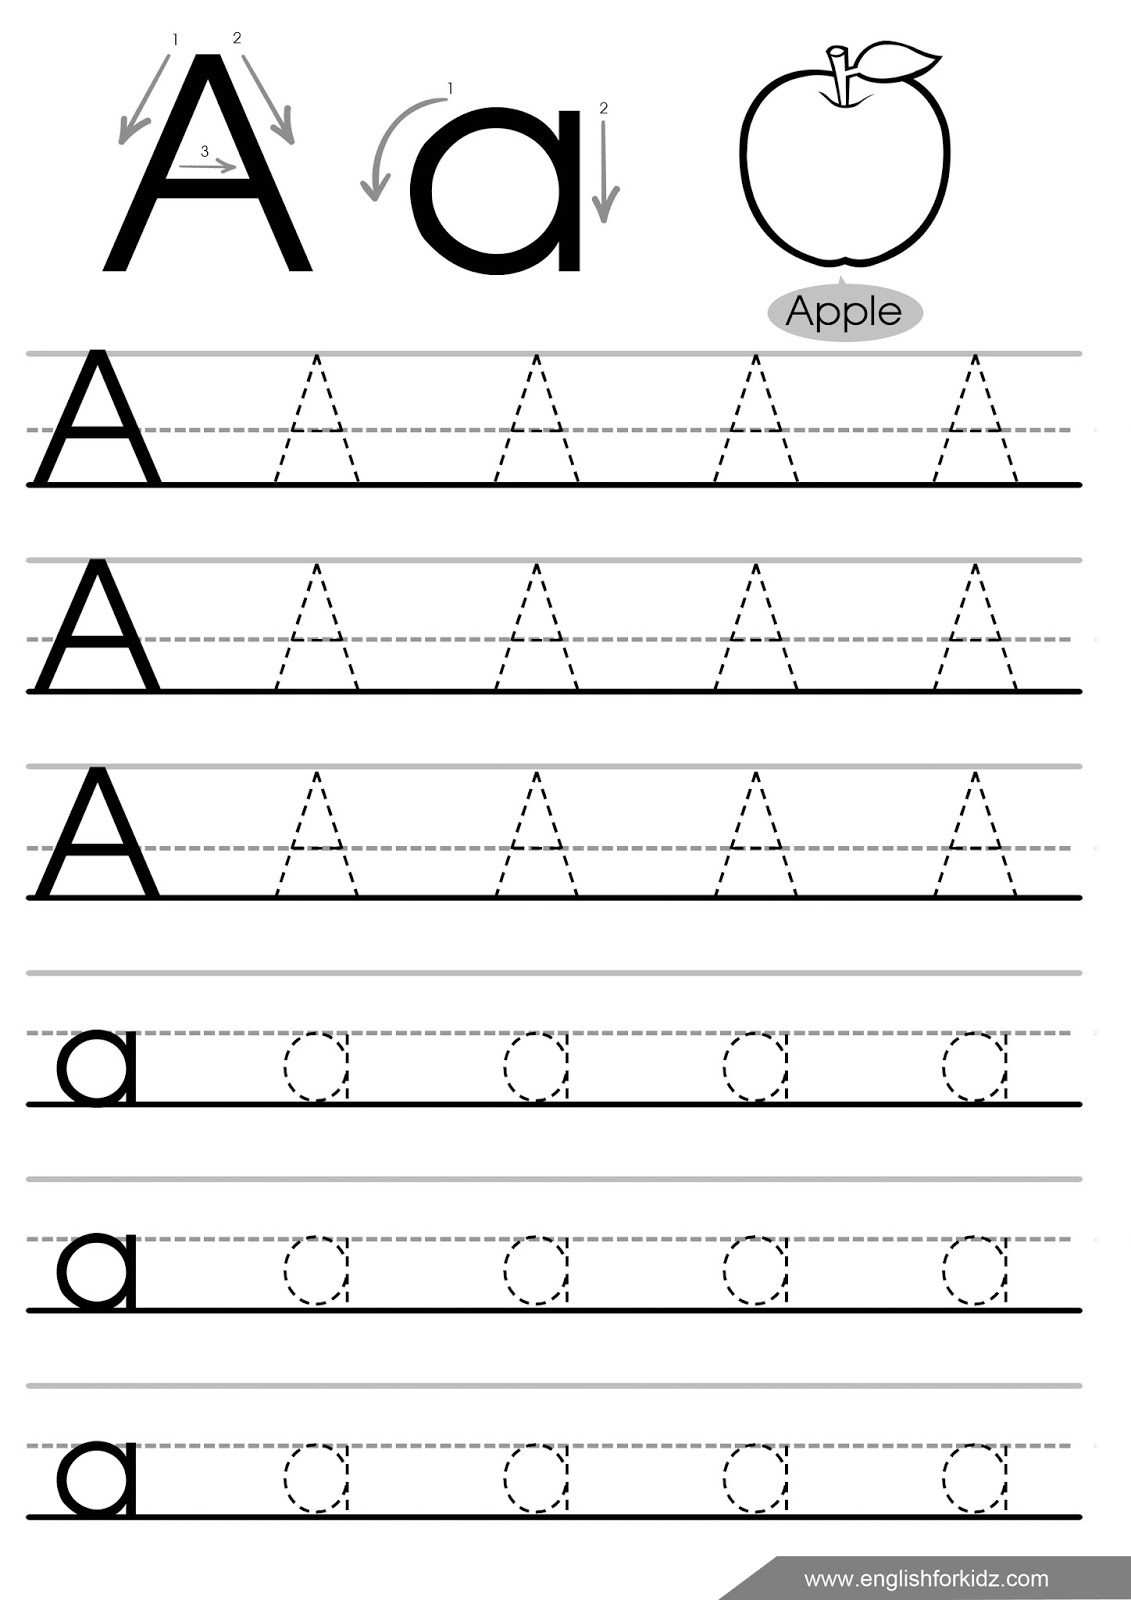 Coloring Book : Coloring Book Letter Tracing Worksheets inside Tracing Letter A Worksheet Pdf